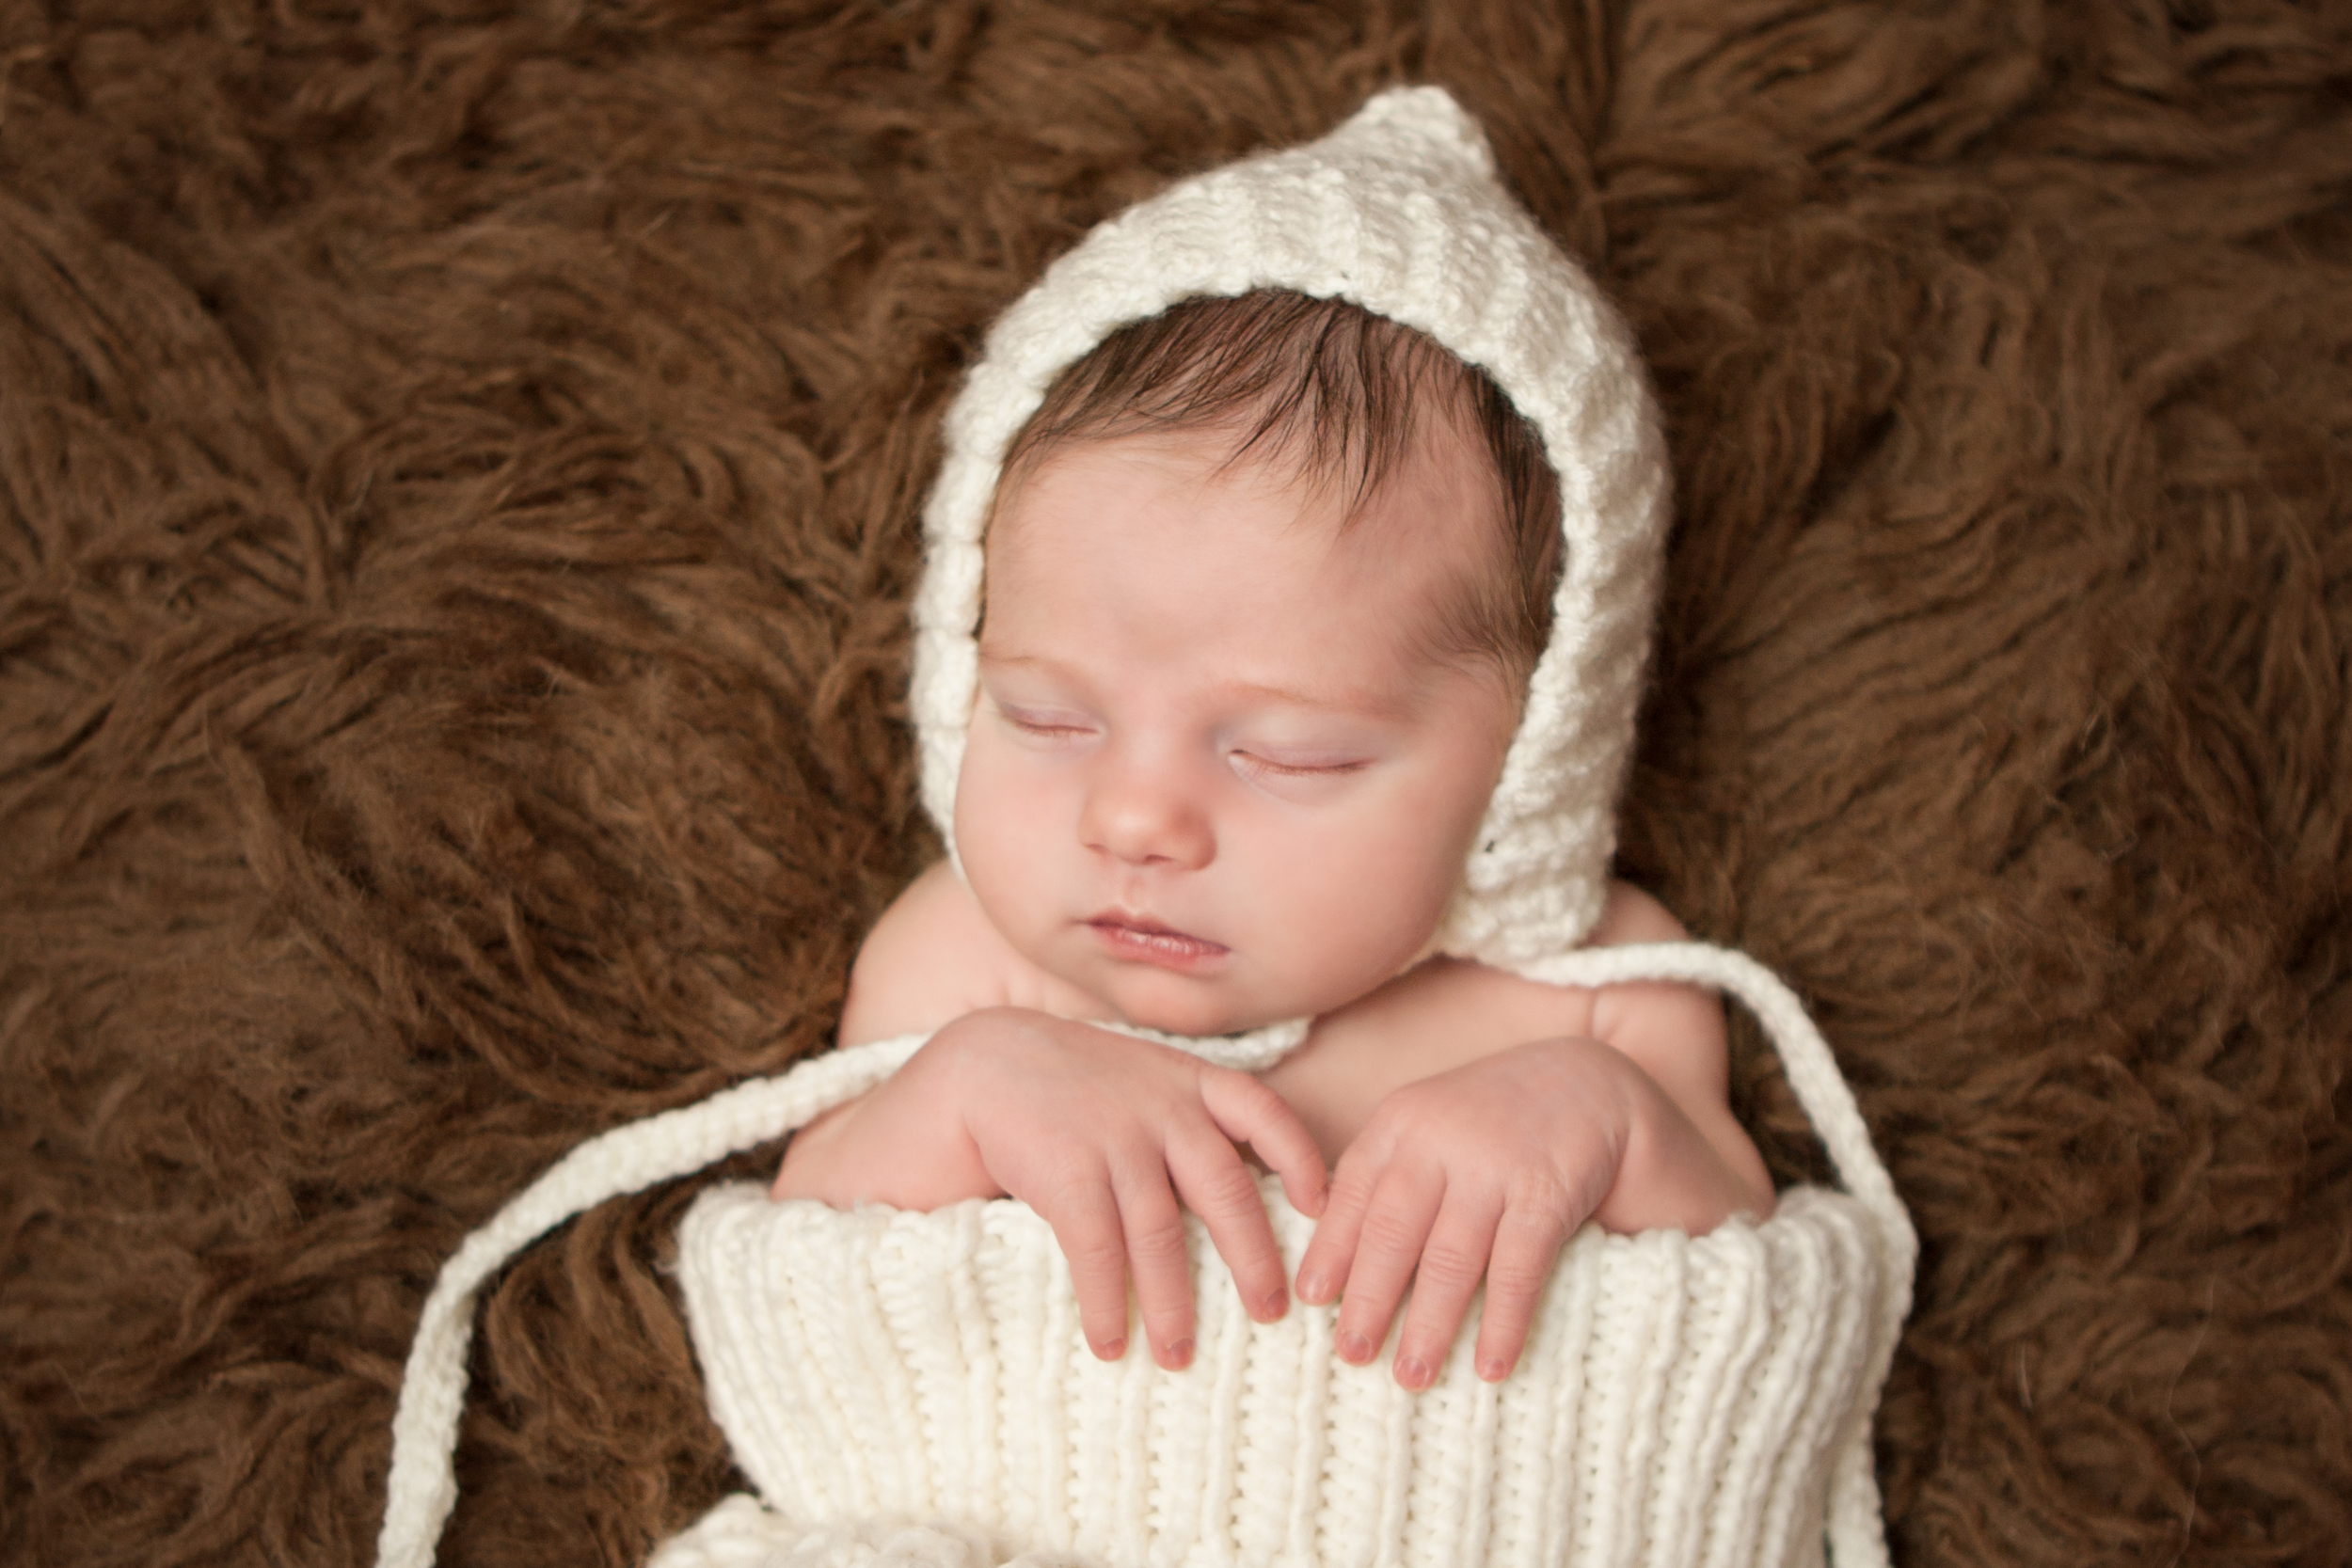 Newborn baby girl  , creme white crochet bonnet in, in creme white crochet knit wrap sack on brown flokati rug, Westchester County, New York Newborn Photographer, Amanda Noelle Photography.